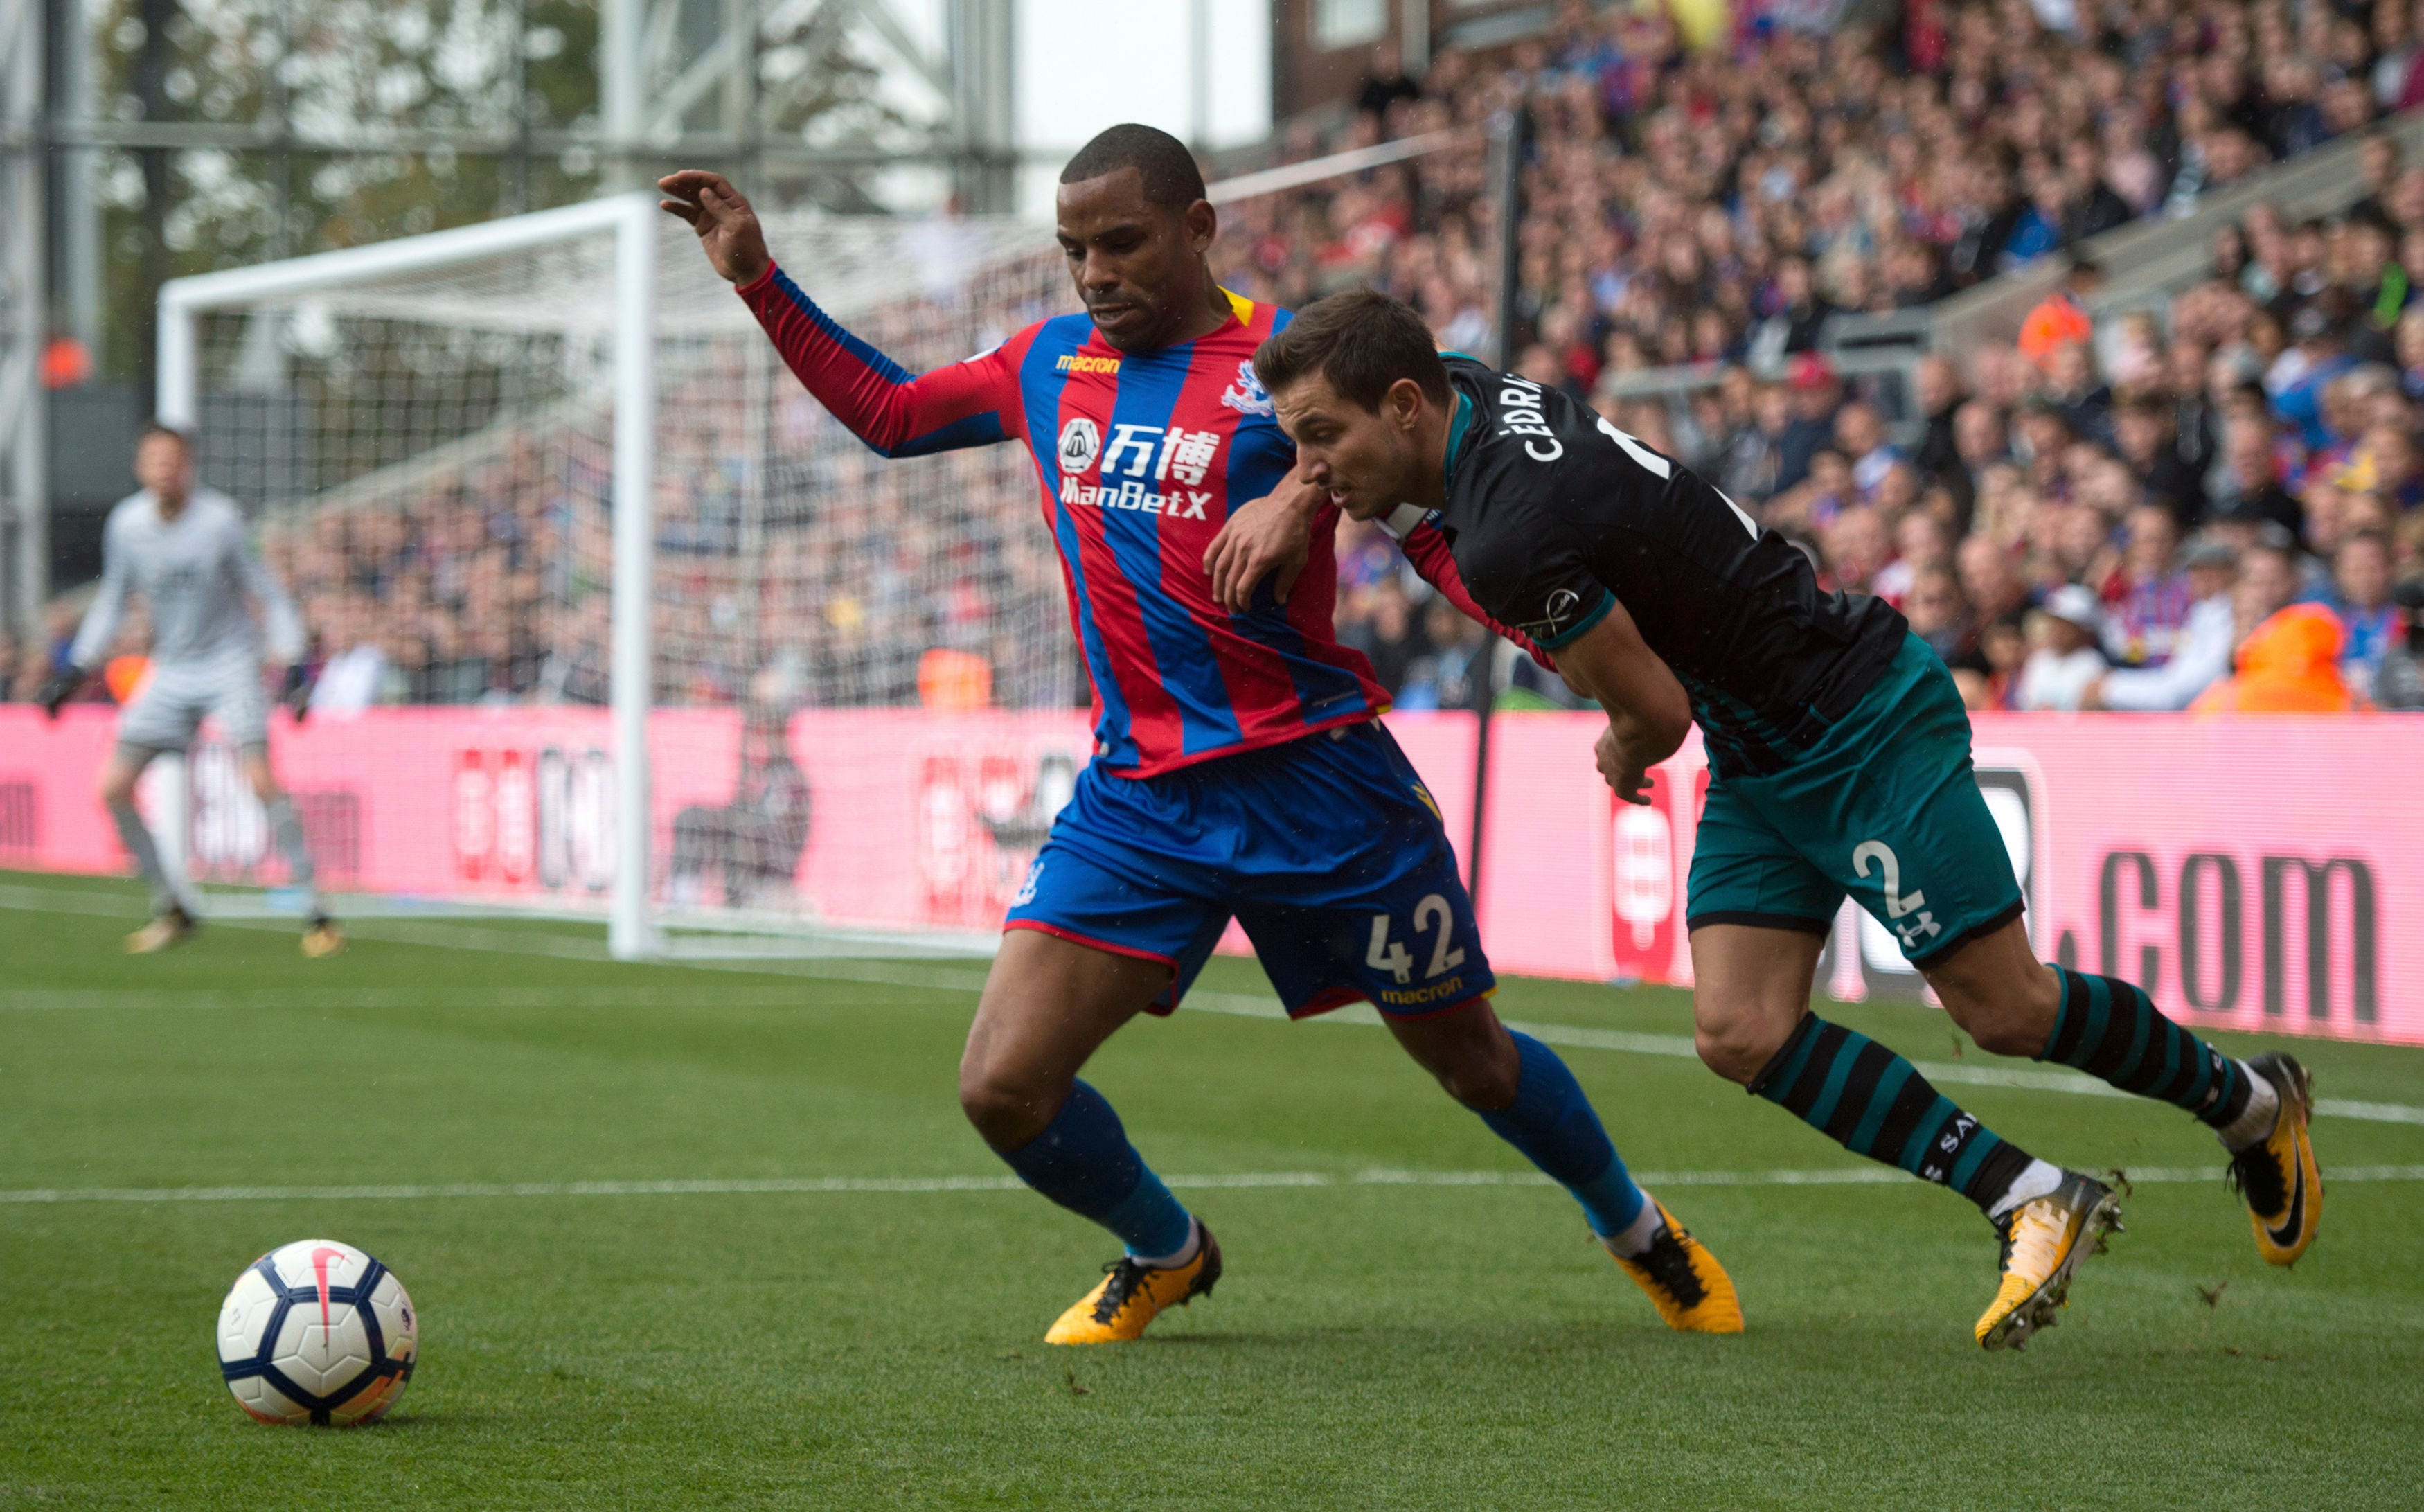 Hodgson back as Palace sets record losing start in EPL